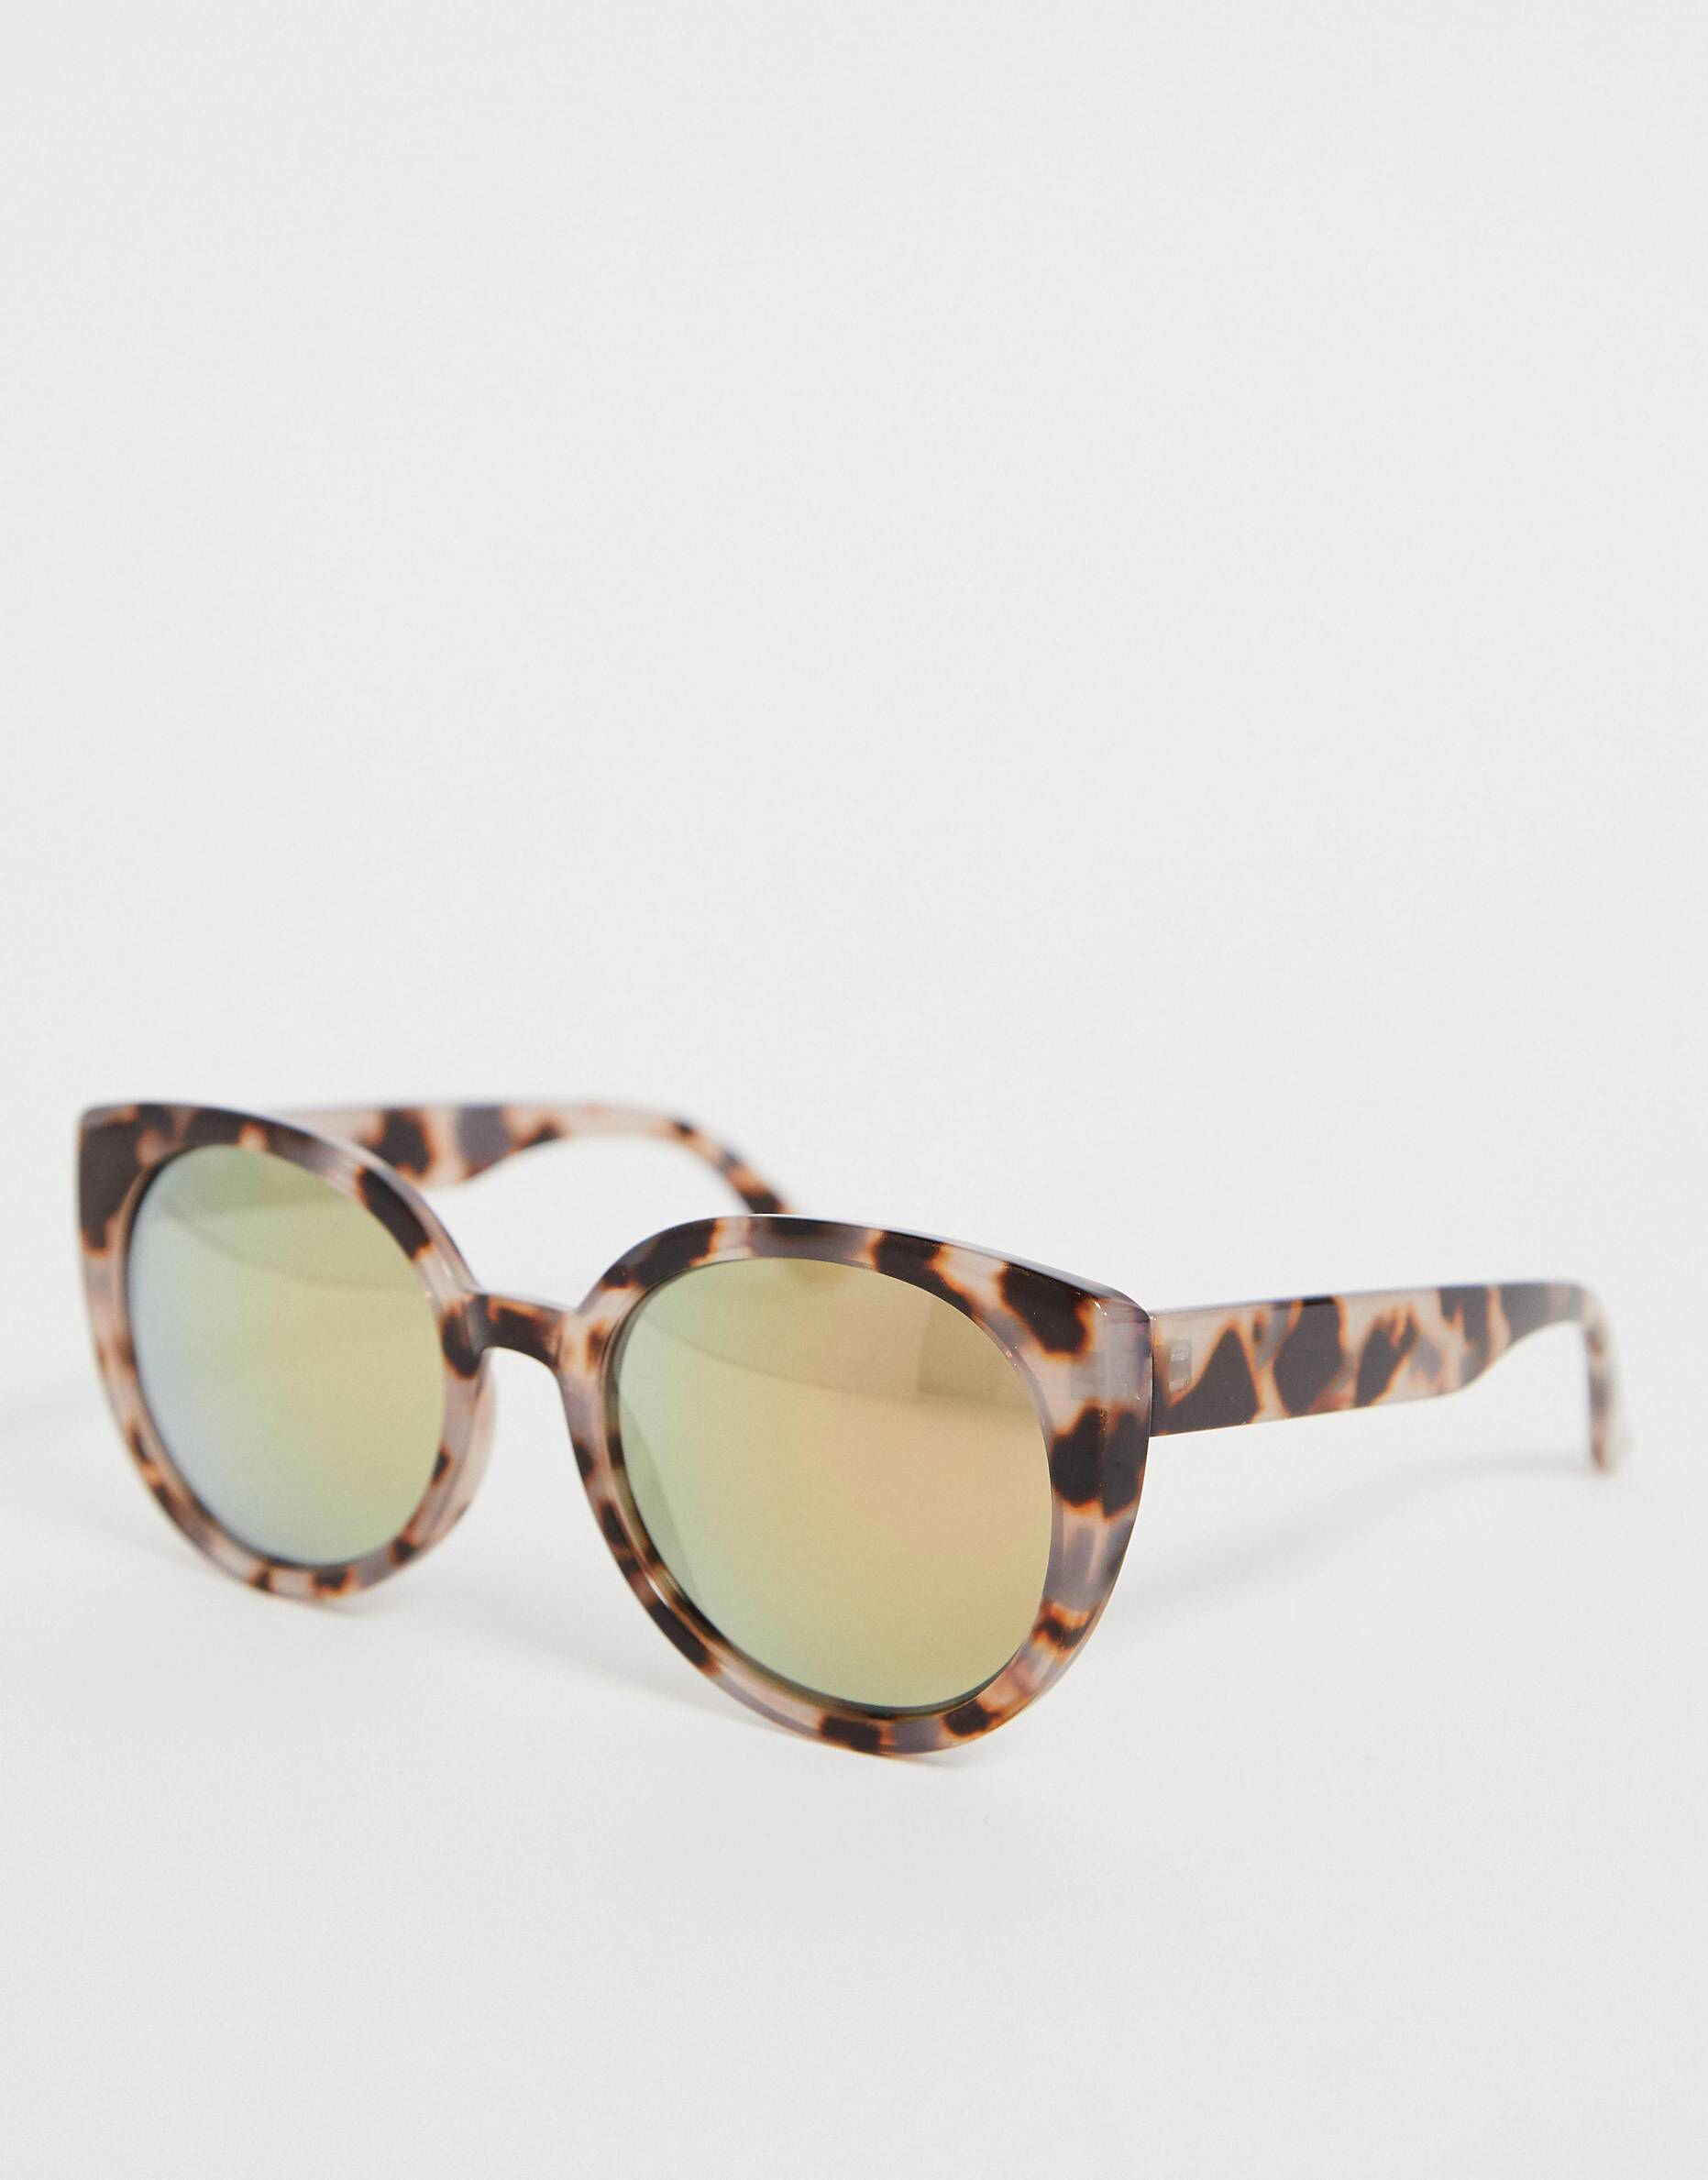 Pin by ADAMSEL in this dress on Cool Shades Sunglasses